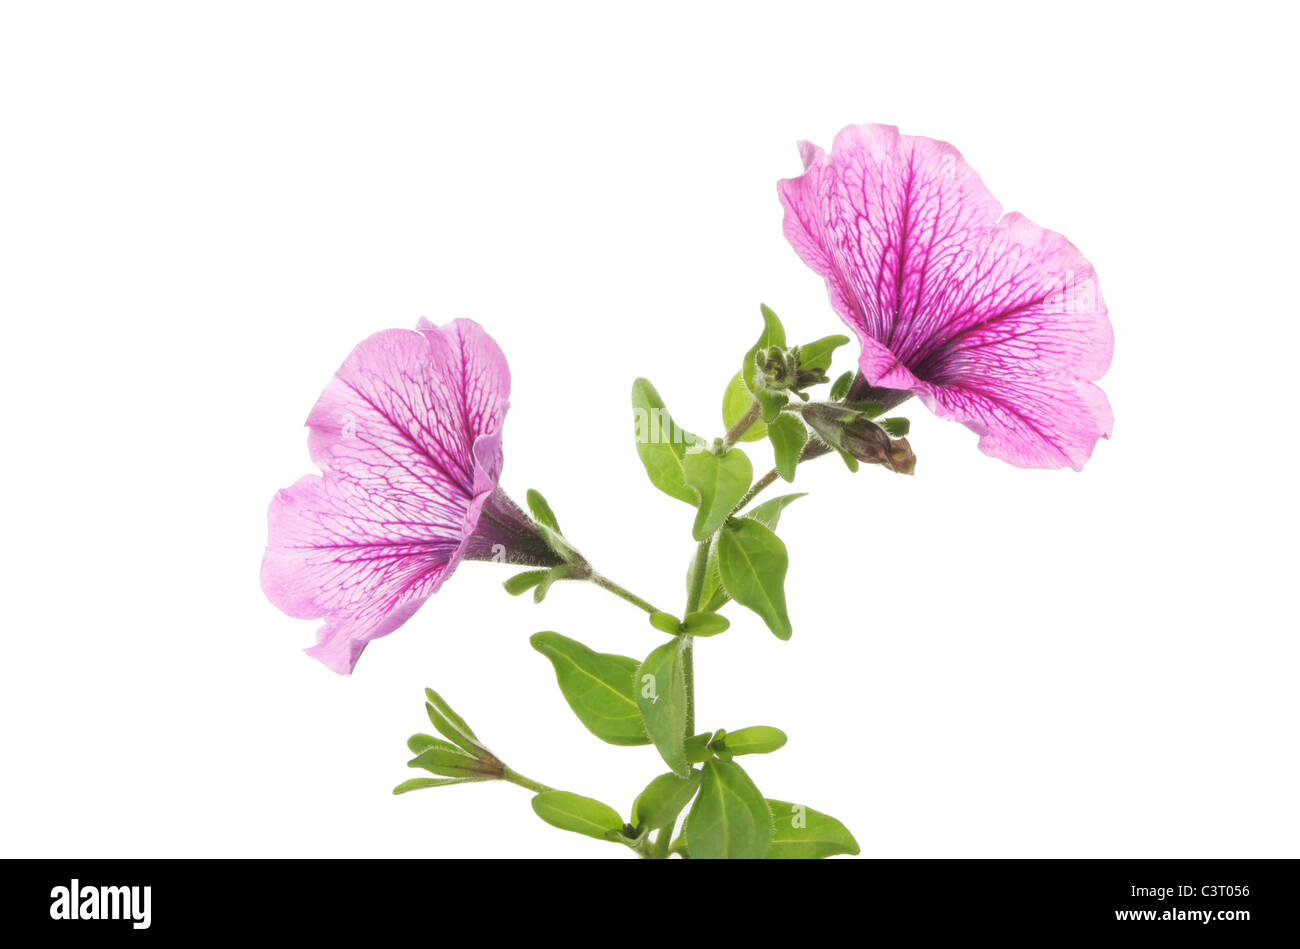 Trumpet shaped petunia flowers against white - Stock Image